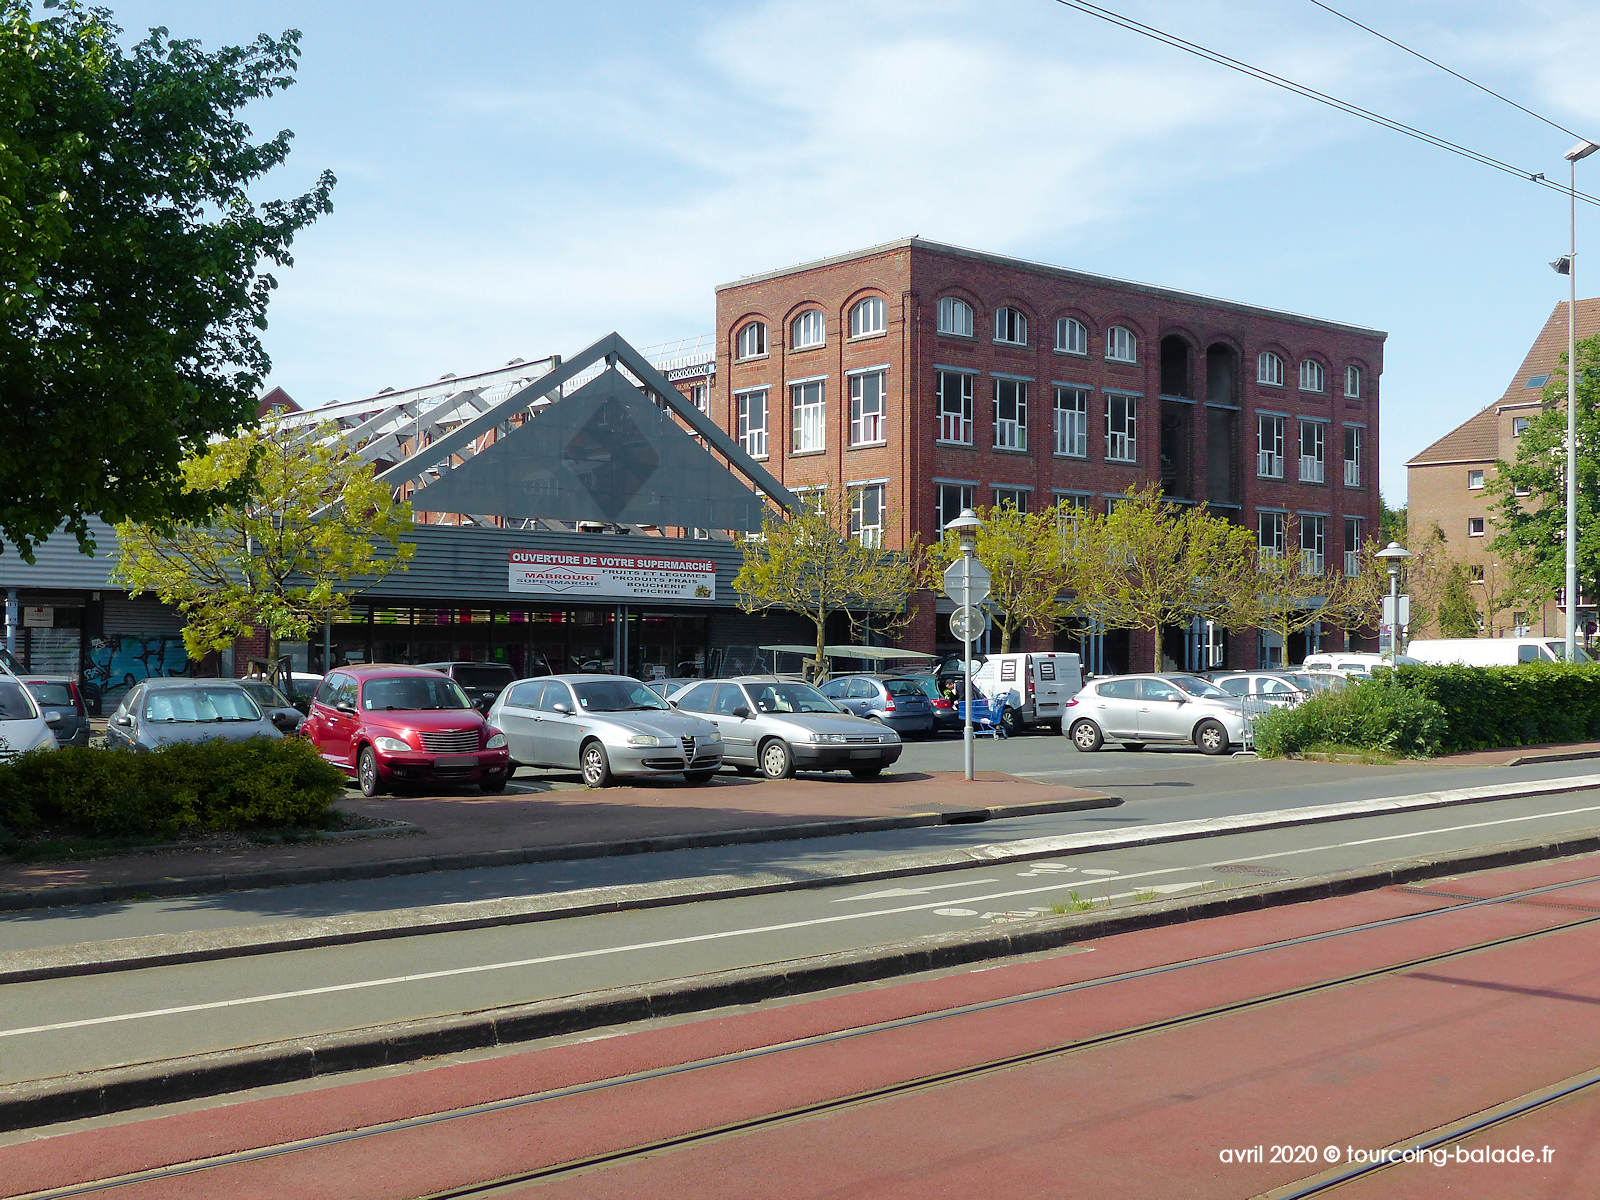 Supermarché Mabrouki, Tourcoing 2020